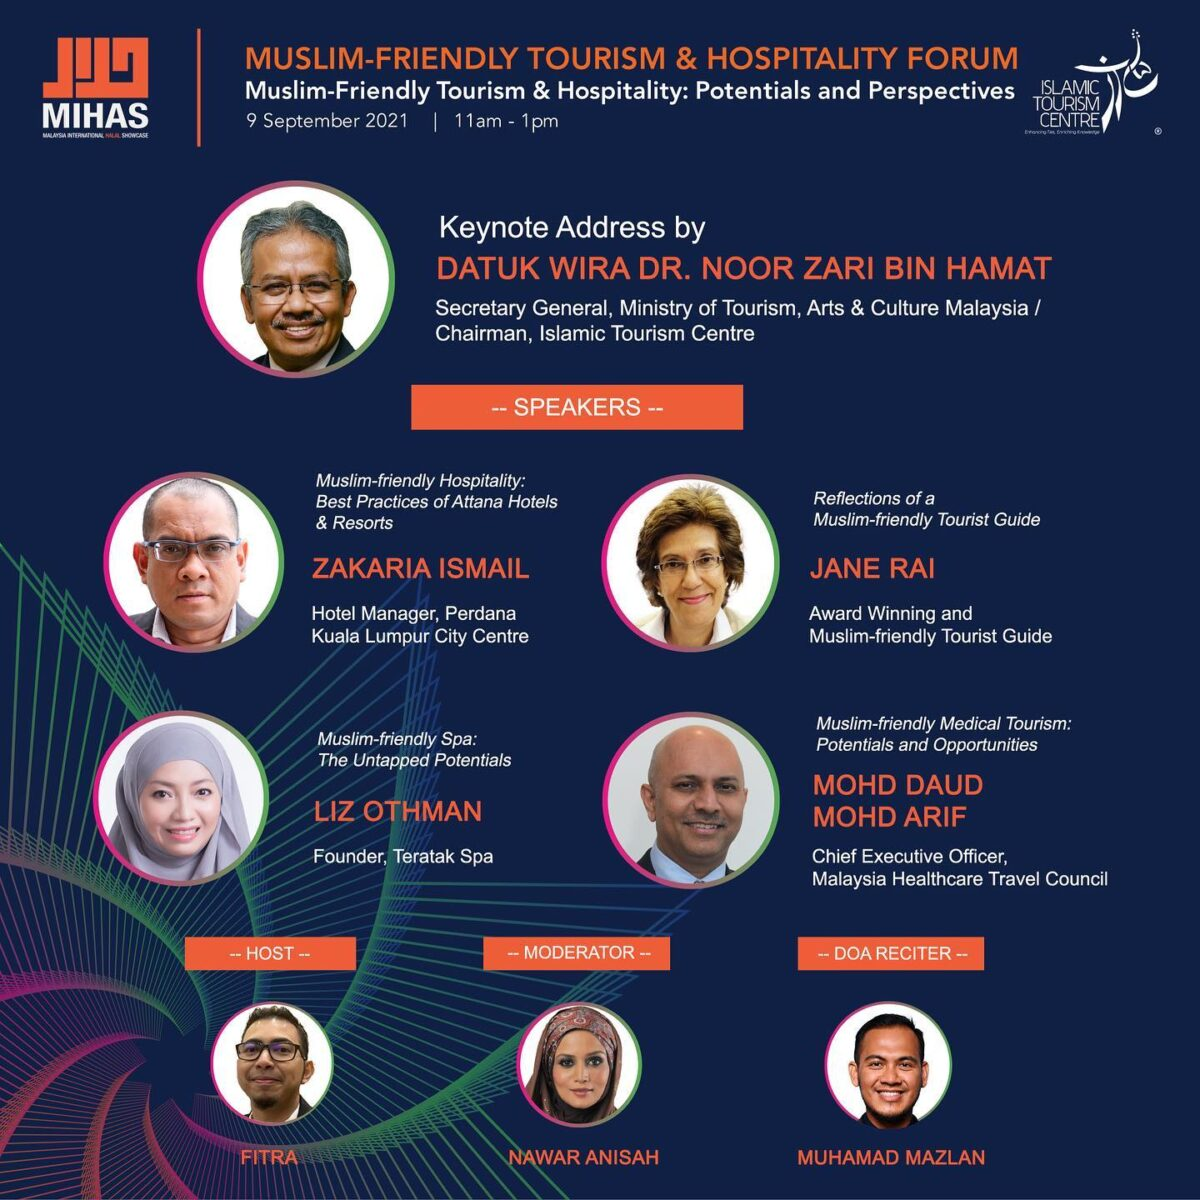 Panelists of the Muslim-friendly Tourism & Hospitality Forum organised by ITC at the 17th MIHAS Malaysia.